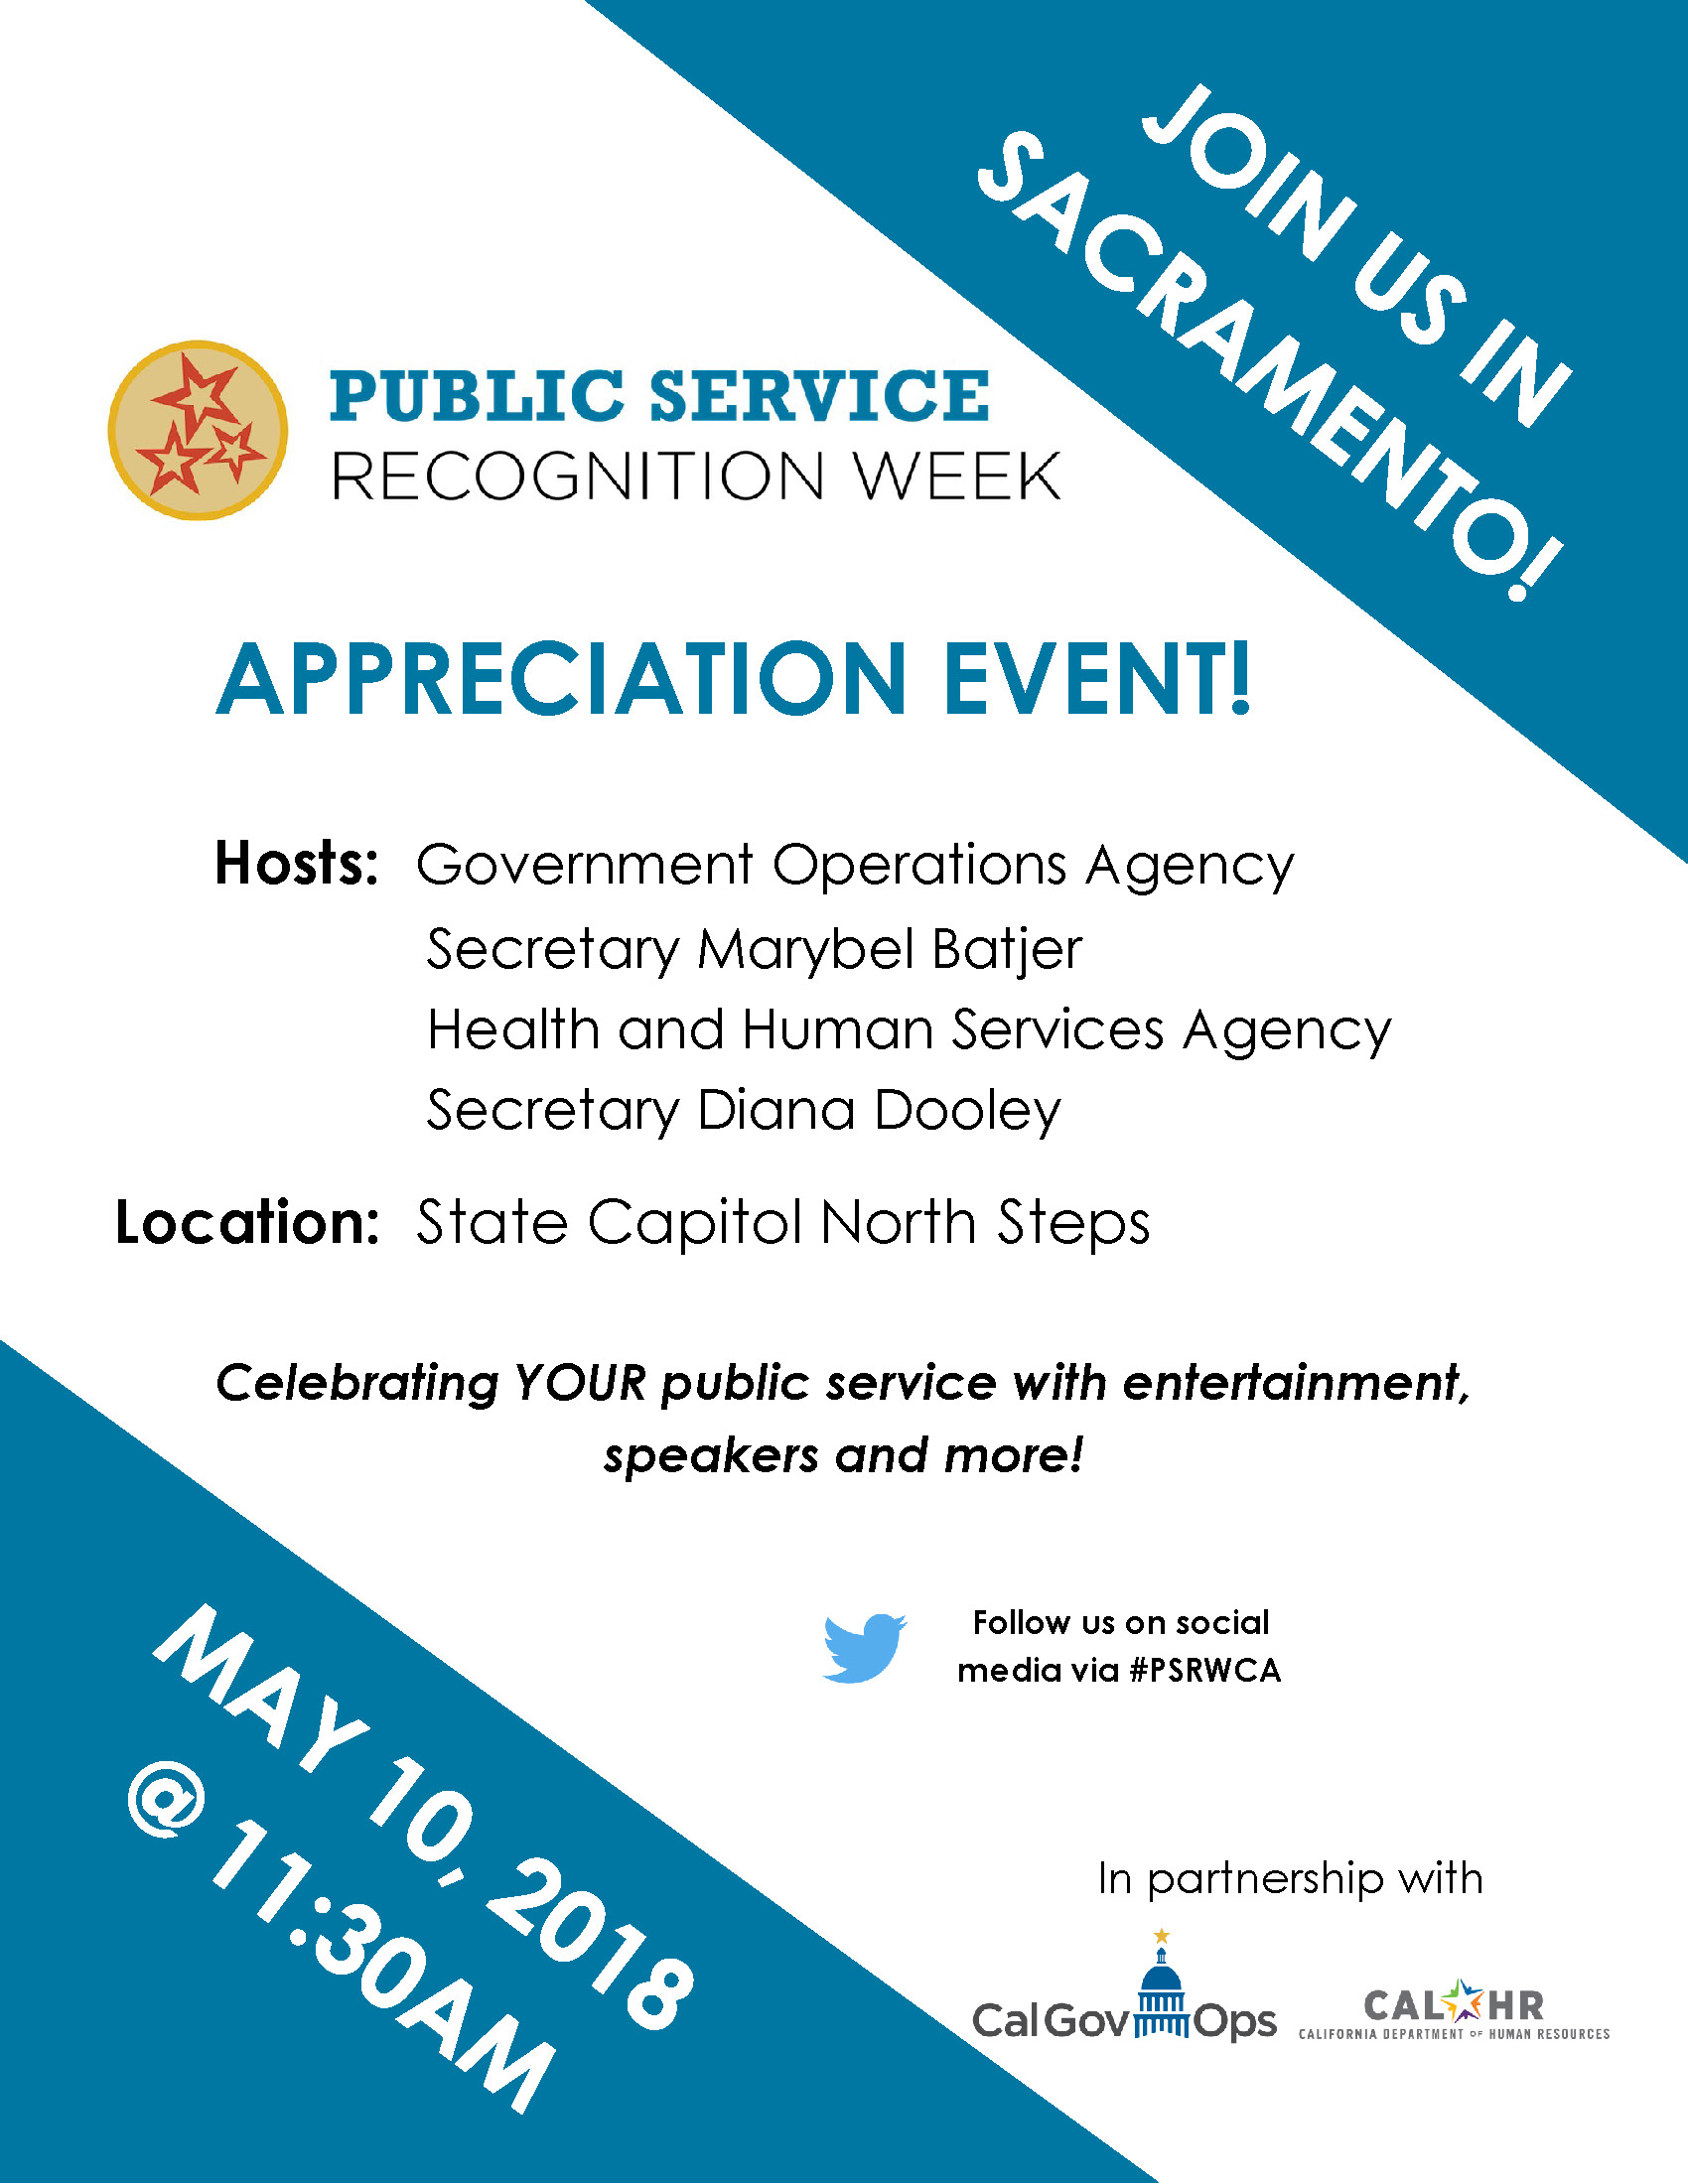 Public Service Recognition Week 2018 Sacramento Flier